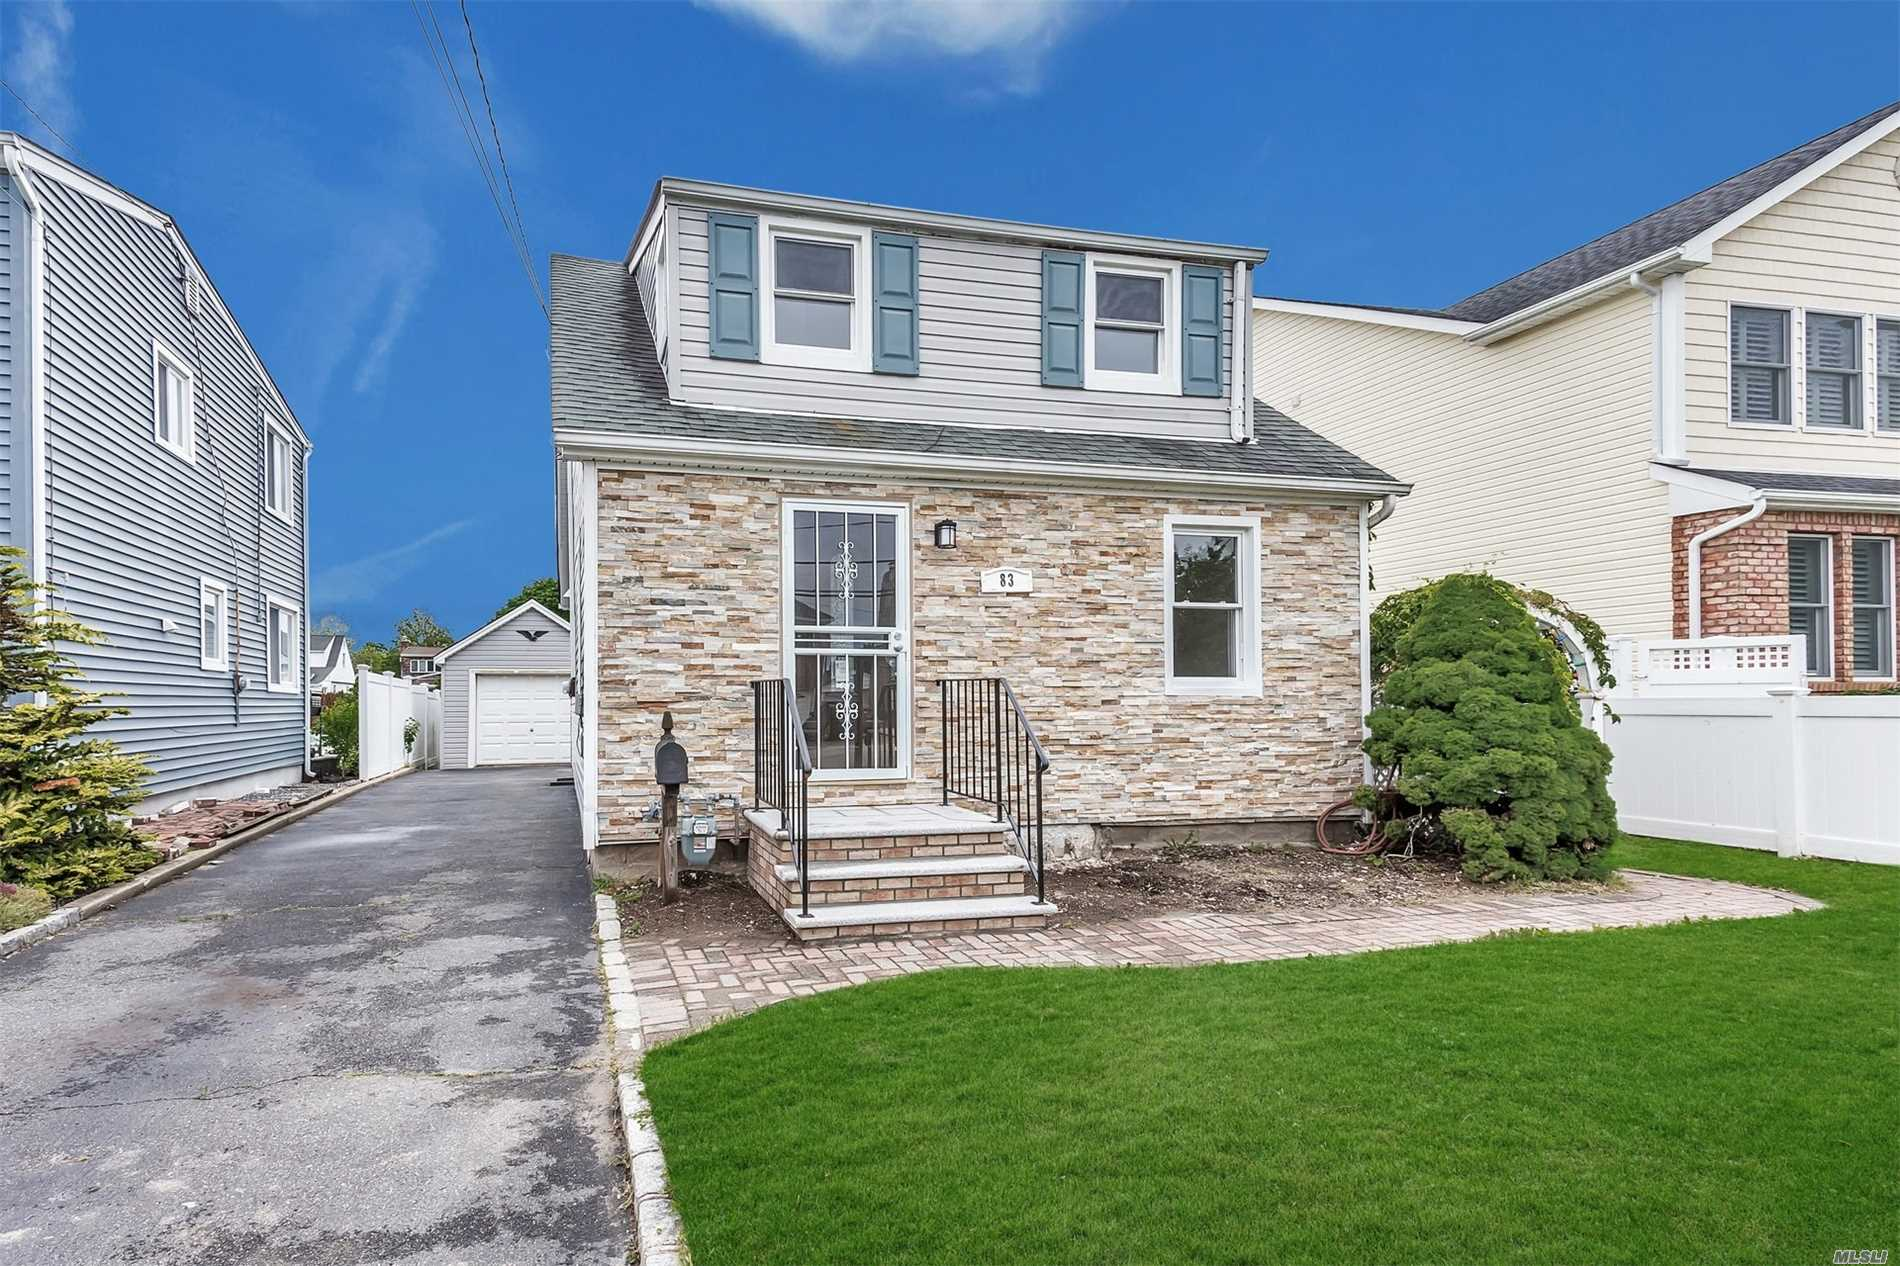 83 Forest Ave - Massapequa, New York